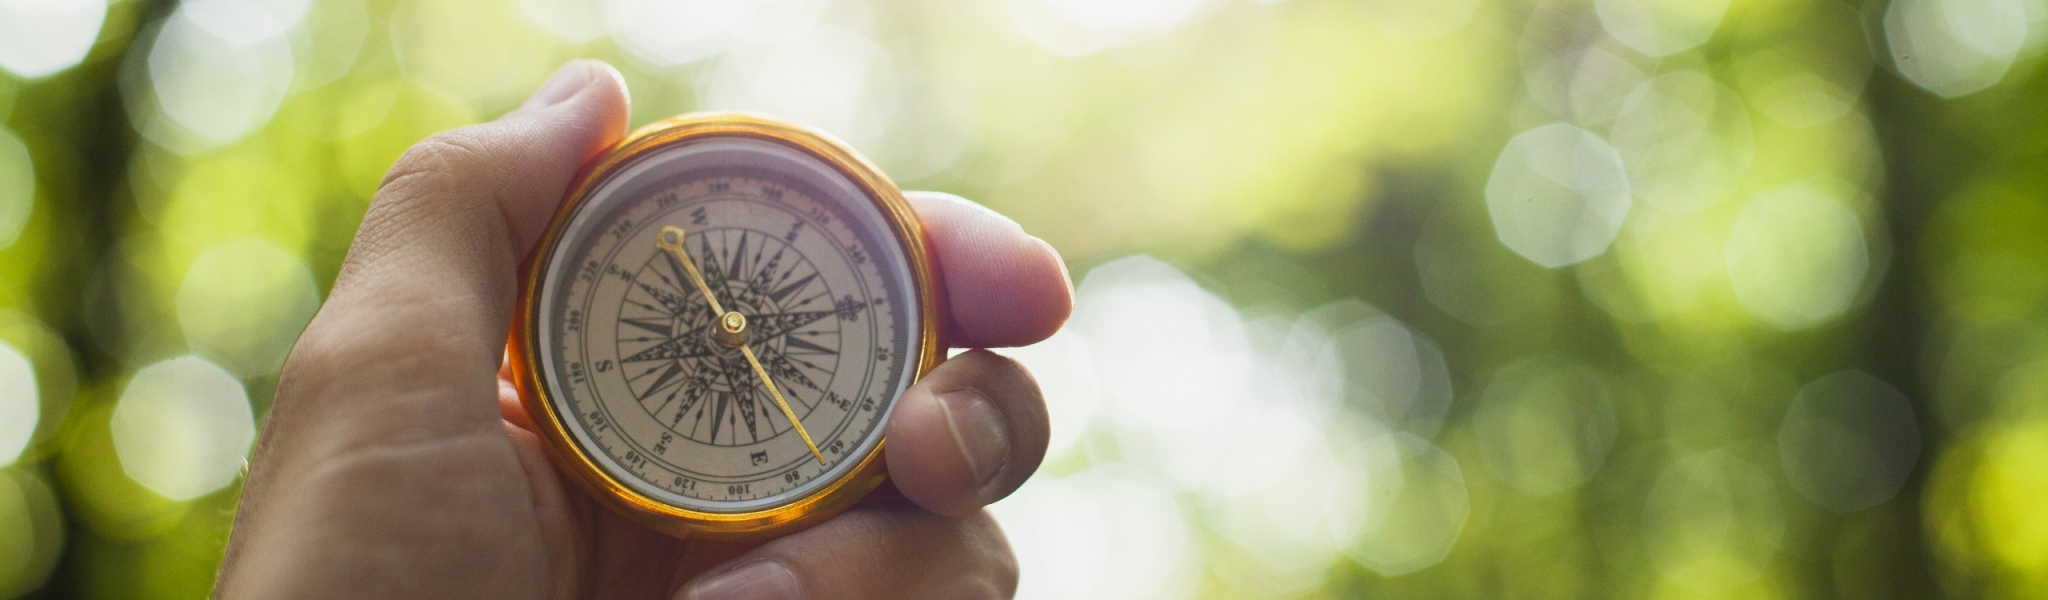 hand-holding-compass-with-blurred-background